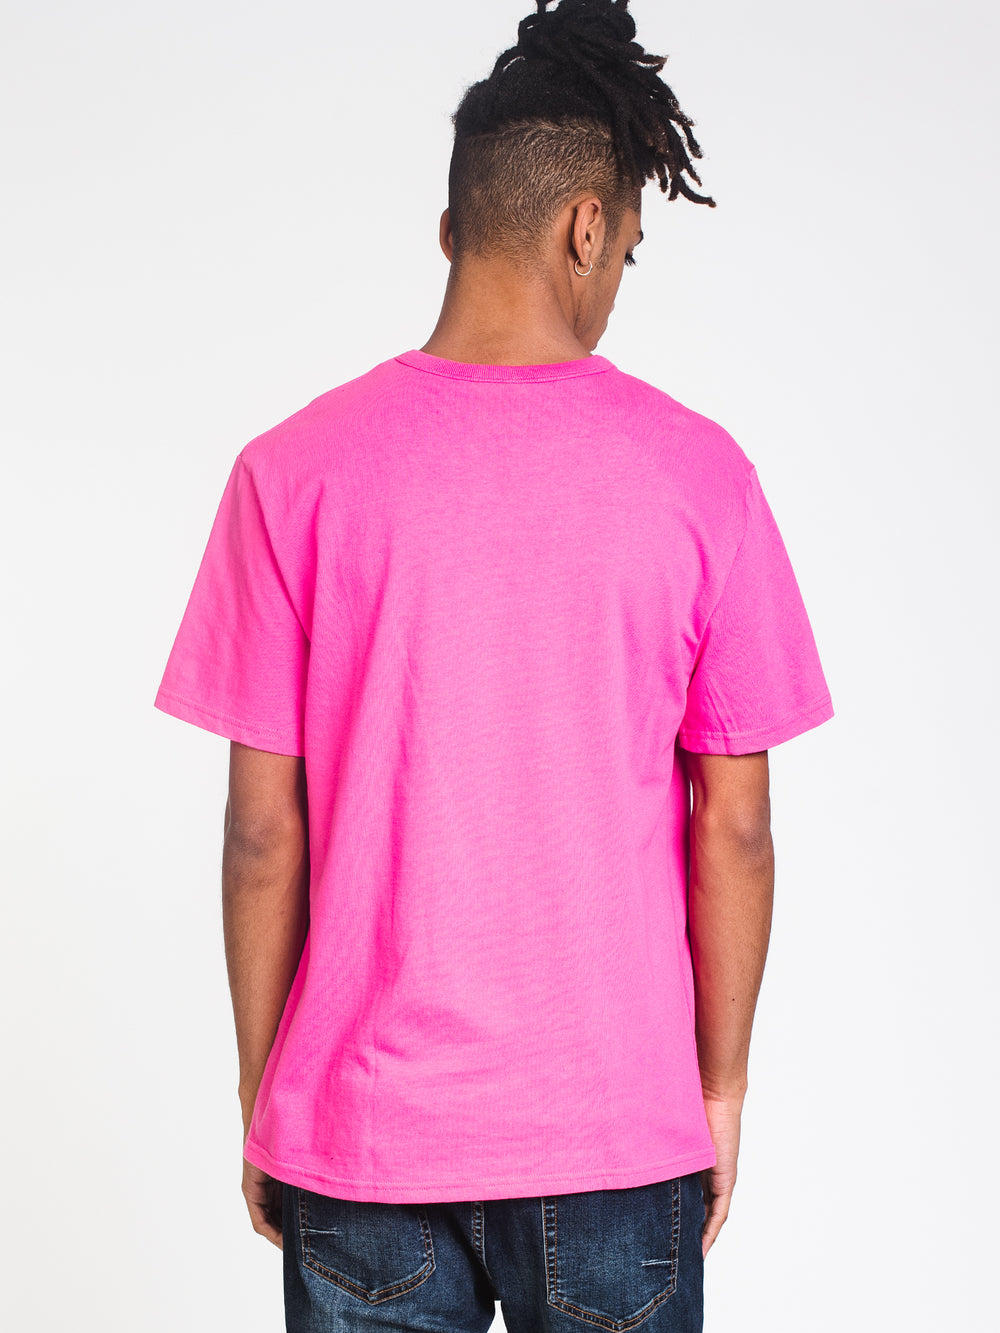 MENS HERITAGE CHN SHORT SLEEVE T-SHIRT- REEF PINK